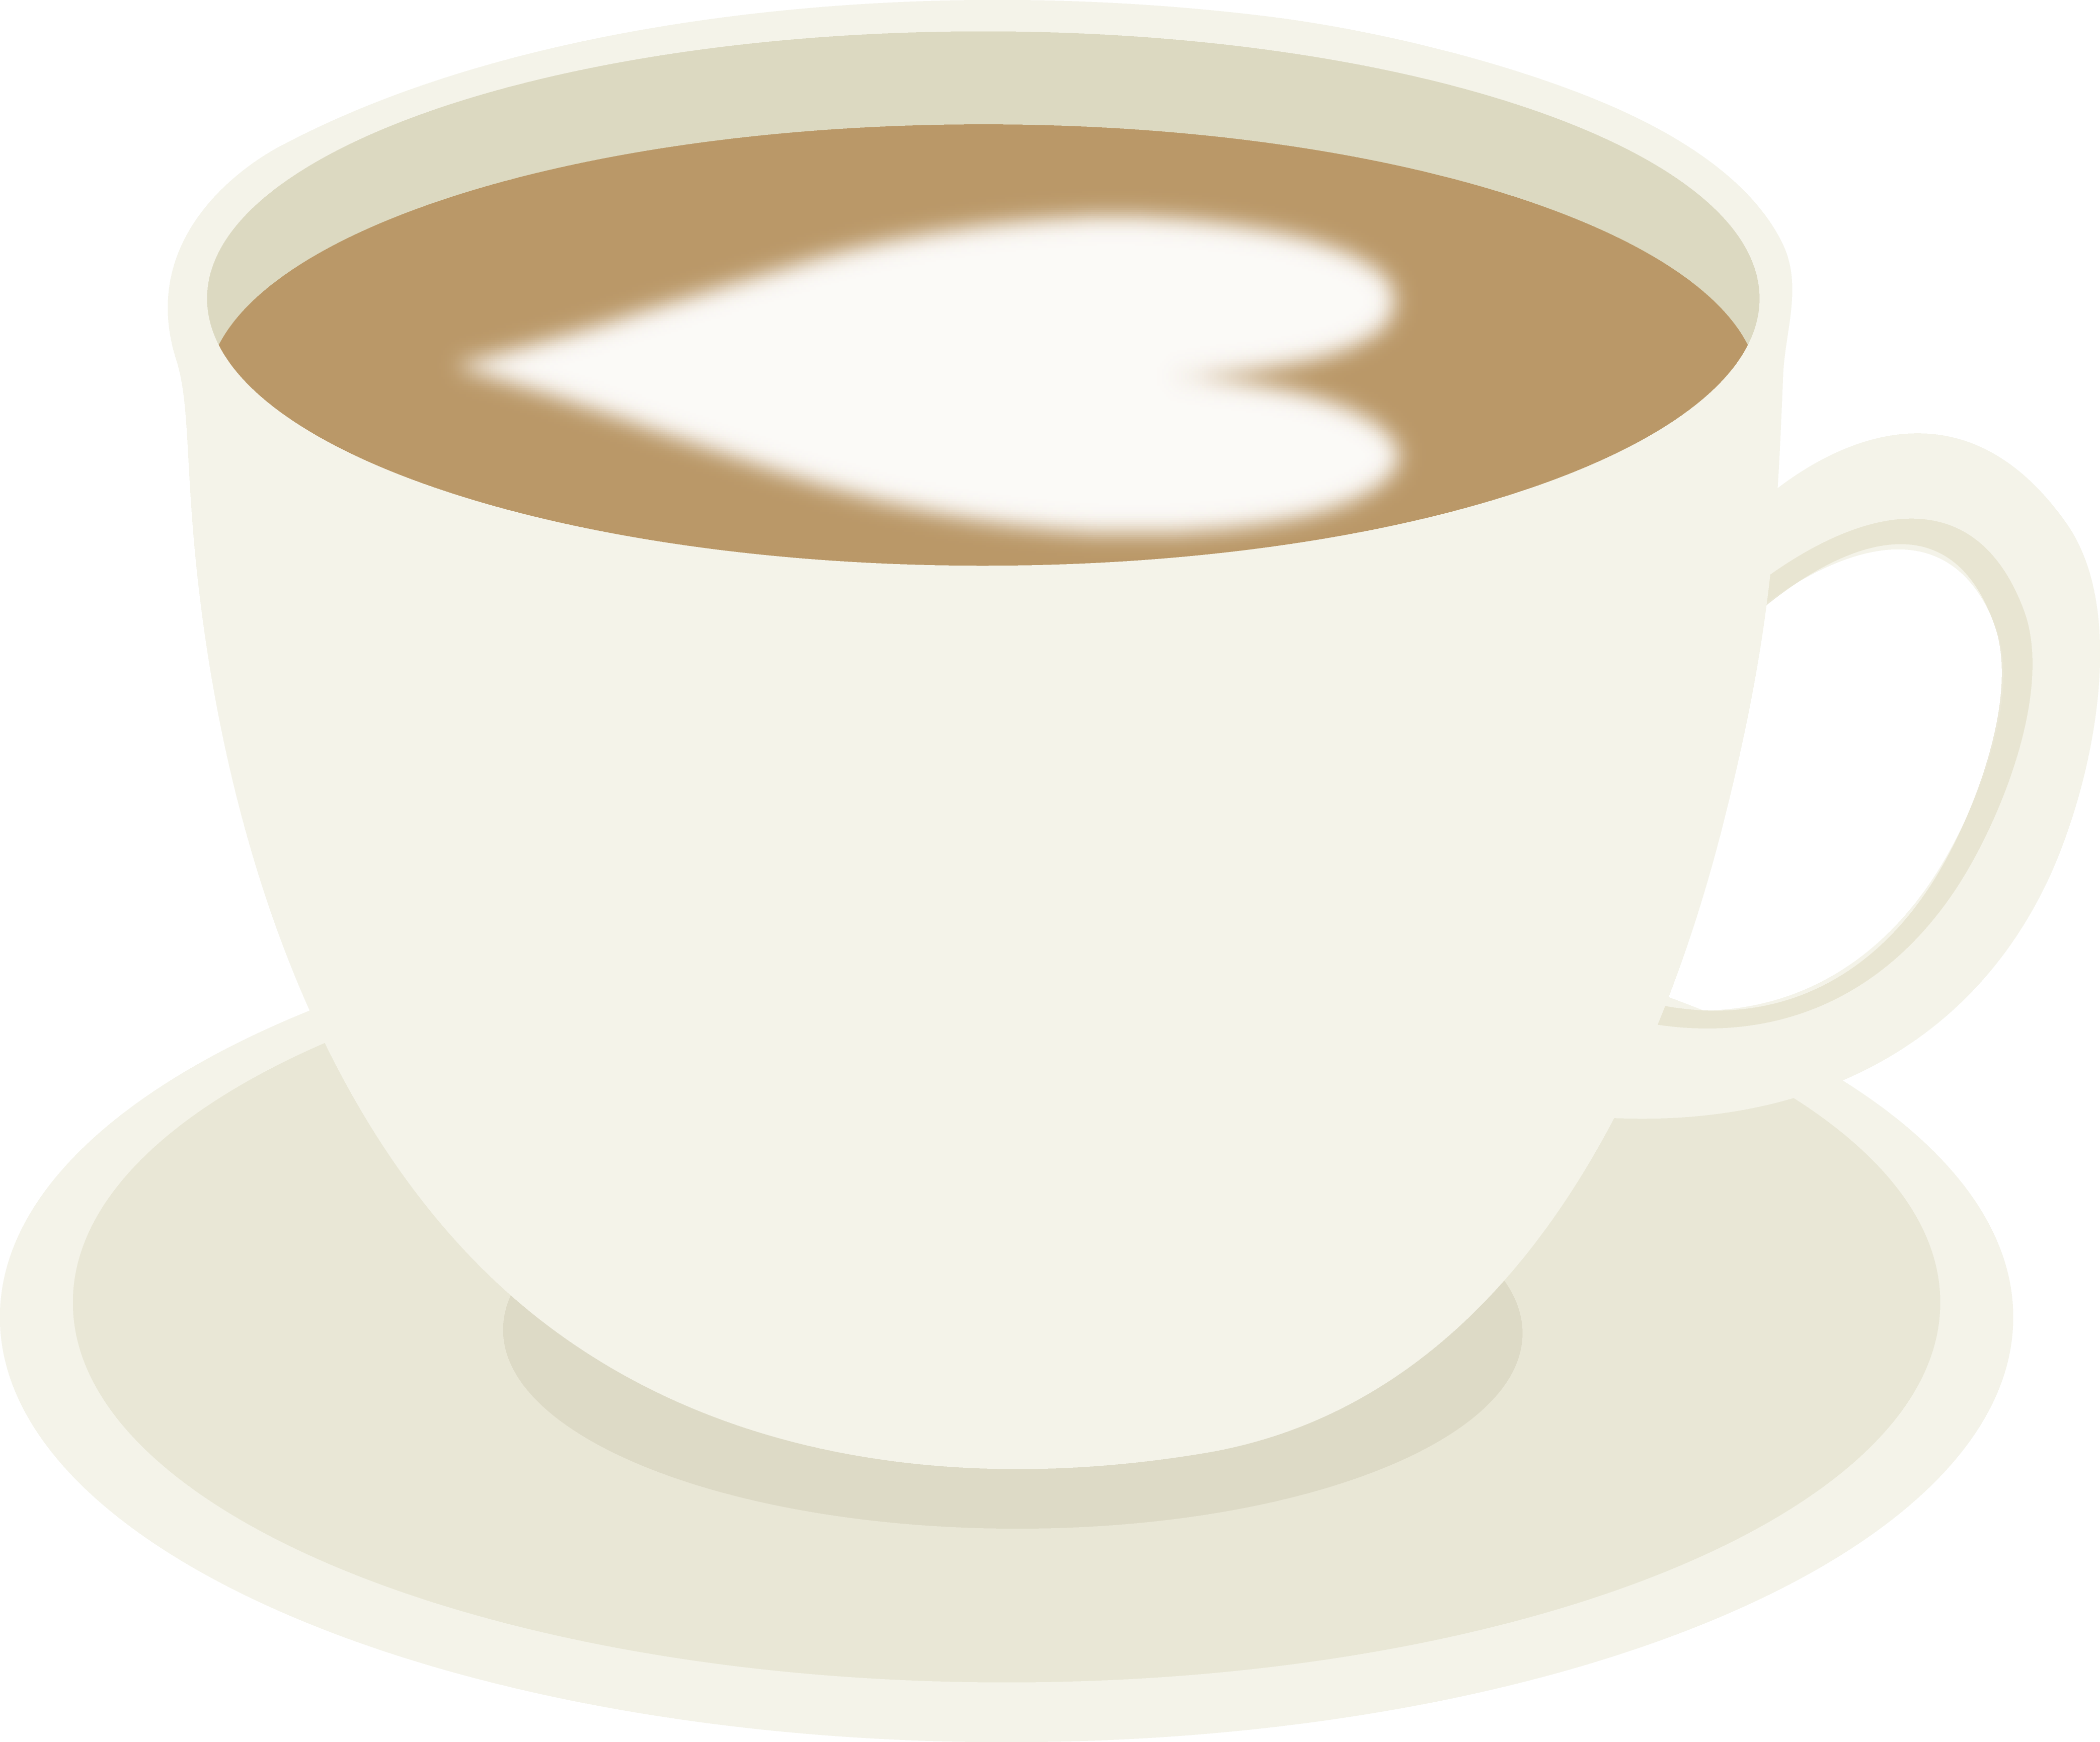 4173x3462 Cup Of Coffee With Cream Heart